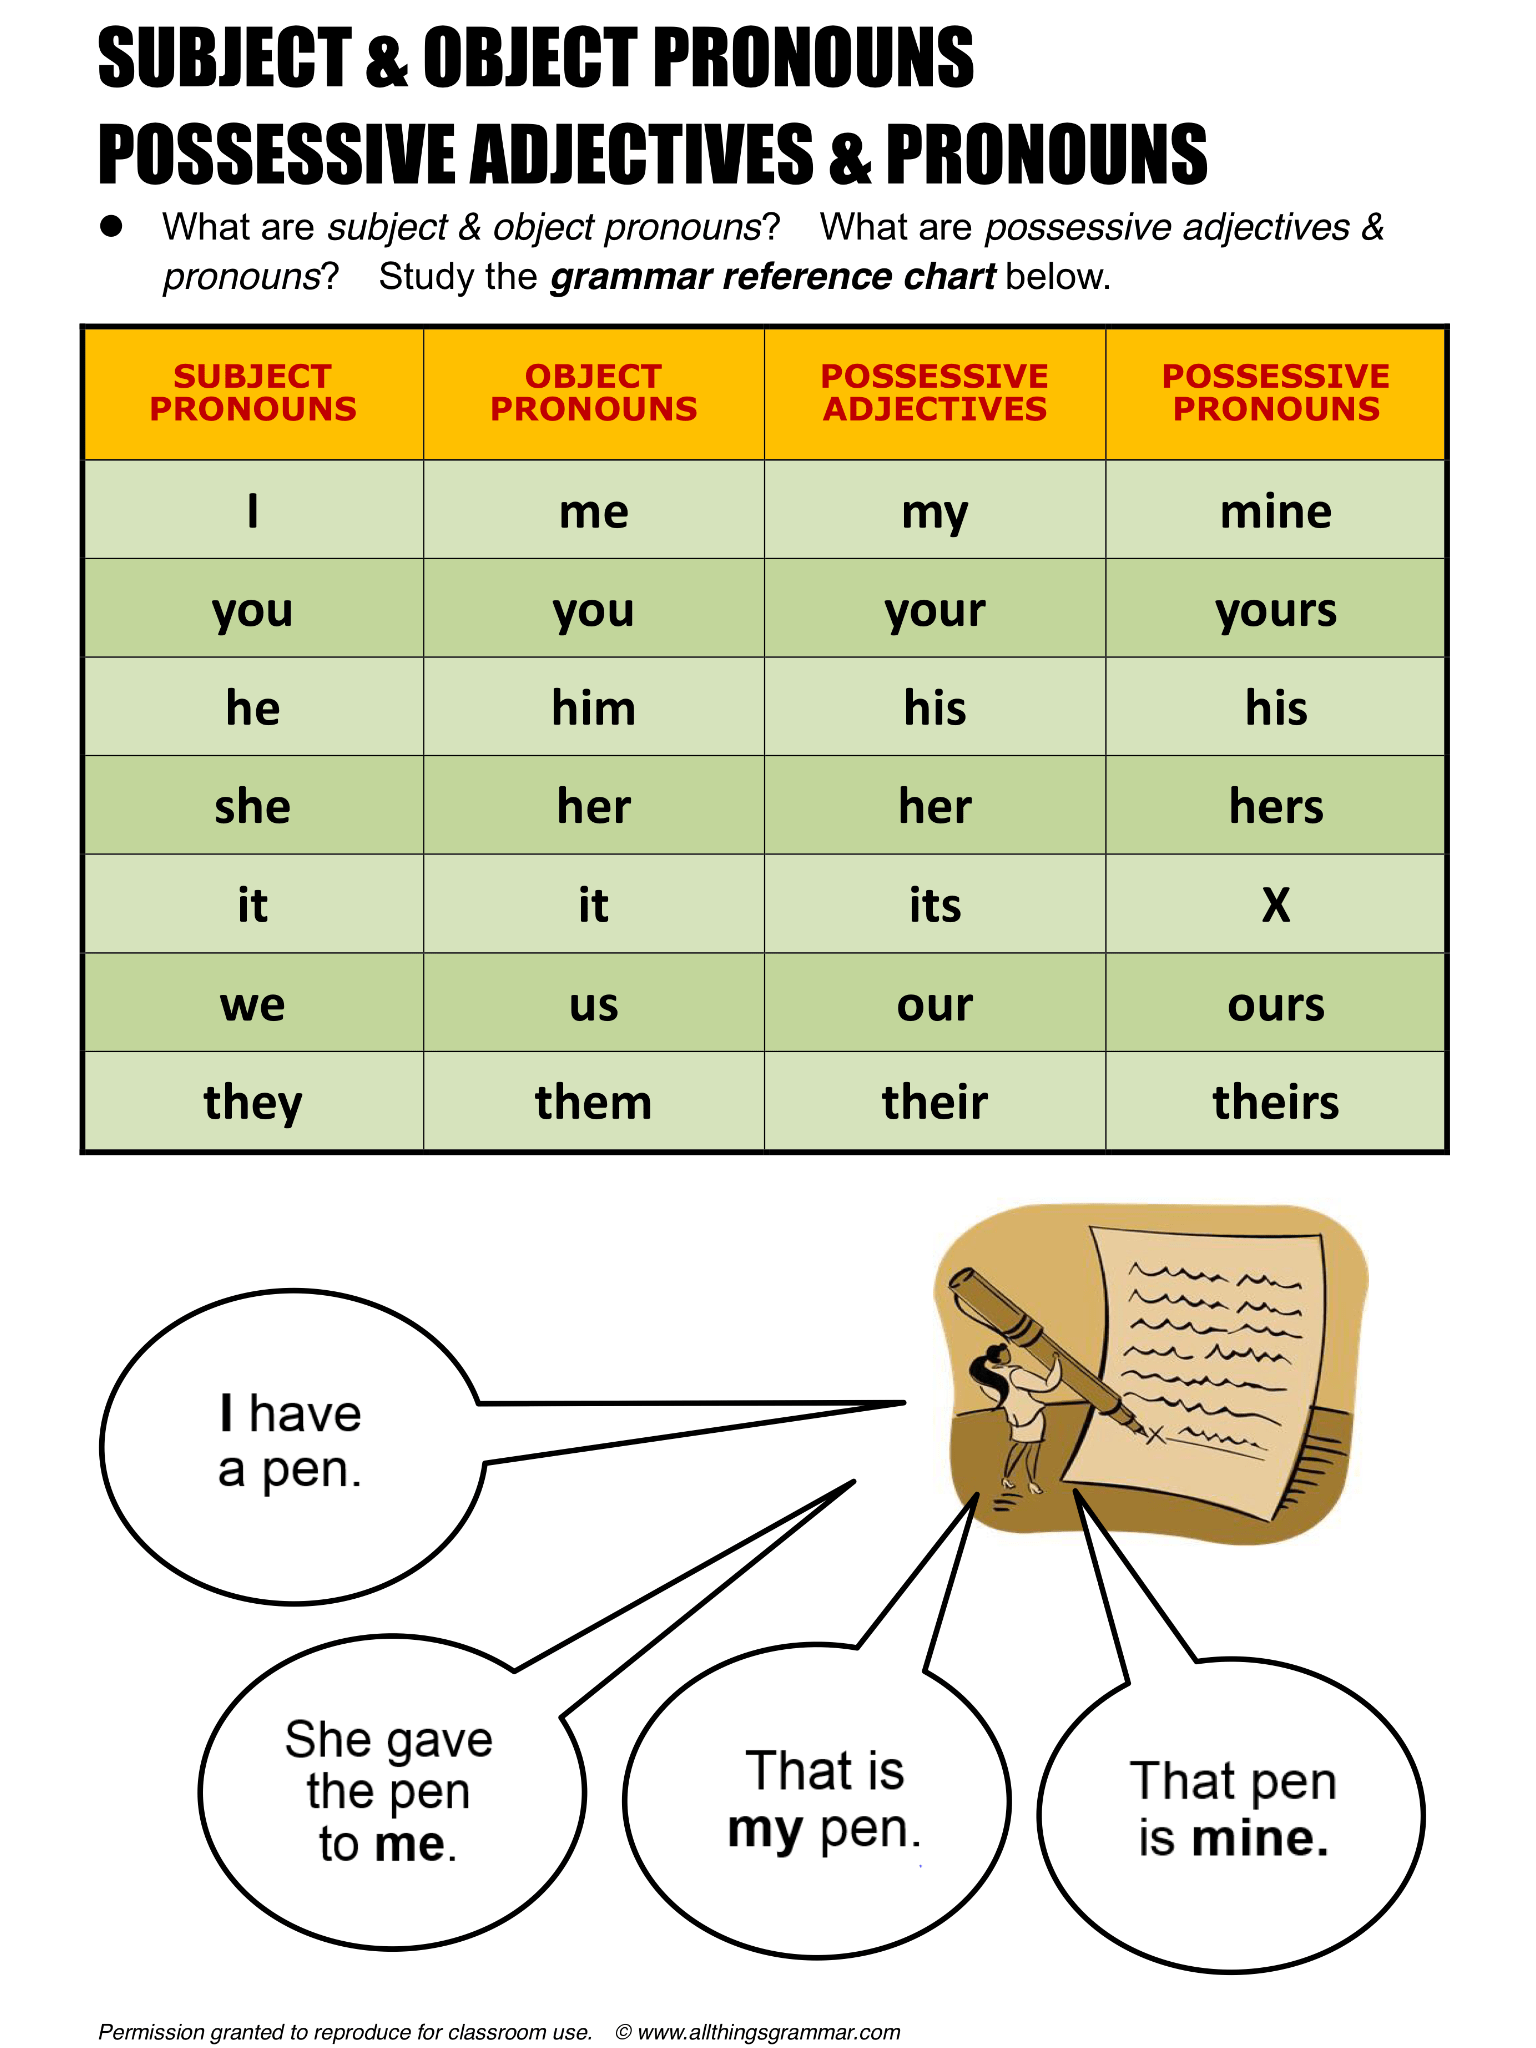 English Grammar Subject Amp Object Pronouns Possessive